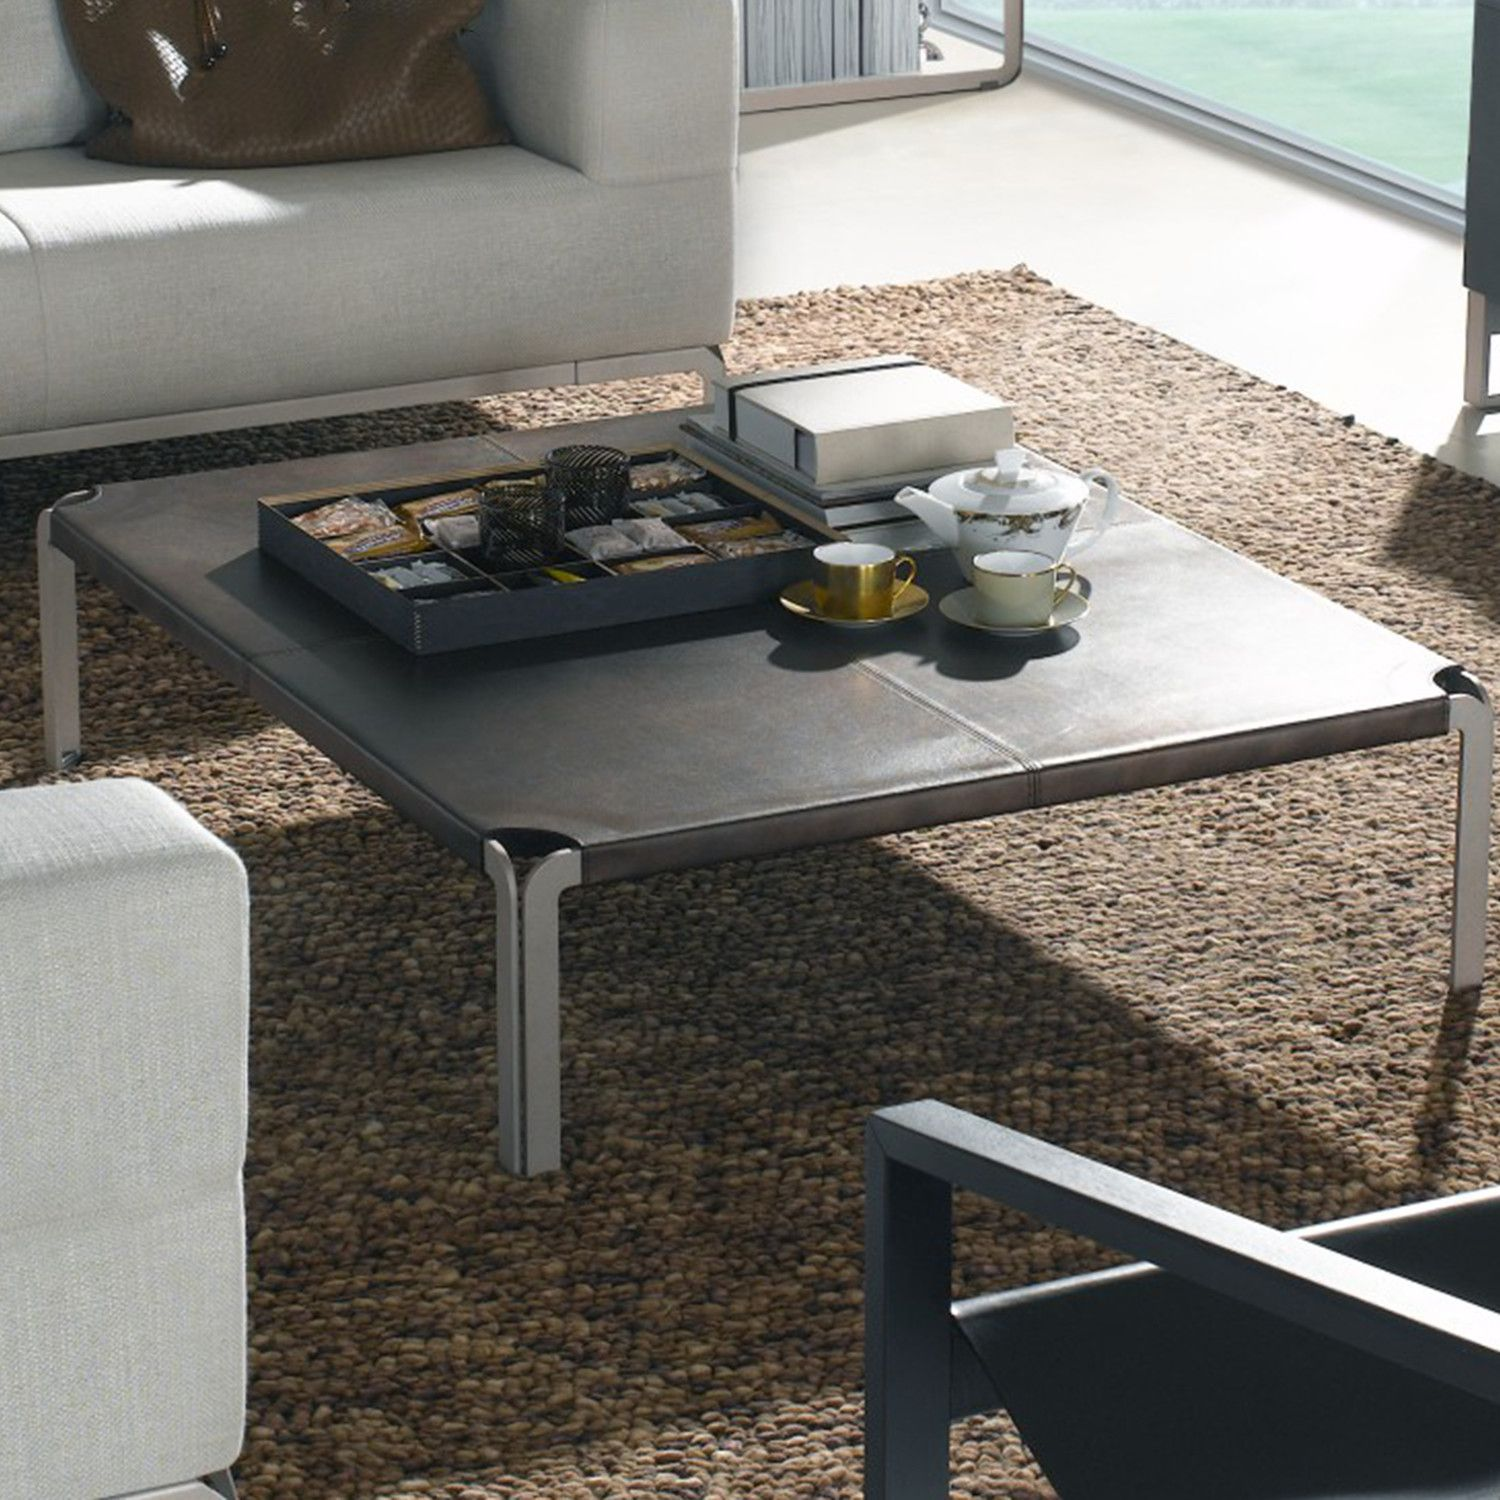 Lensua Coffee Table Leather Top Coffee Table Coffee Table Acrylic Coffee Table [ 1500 x 1500 Pixel ]